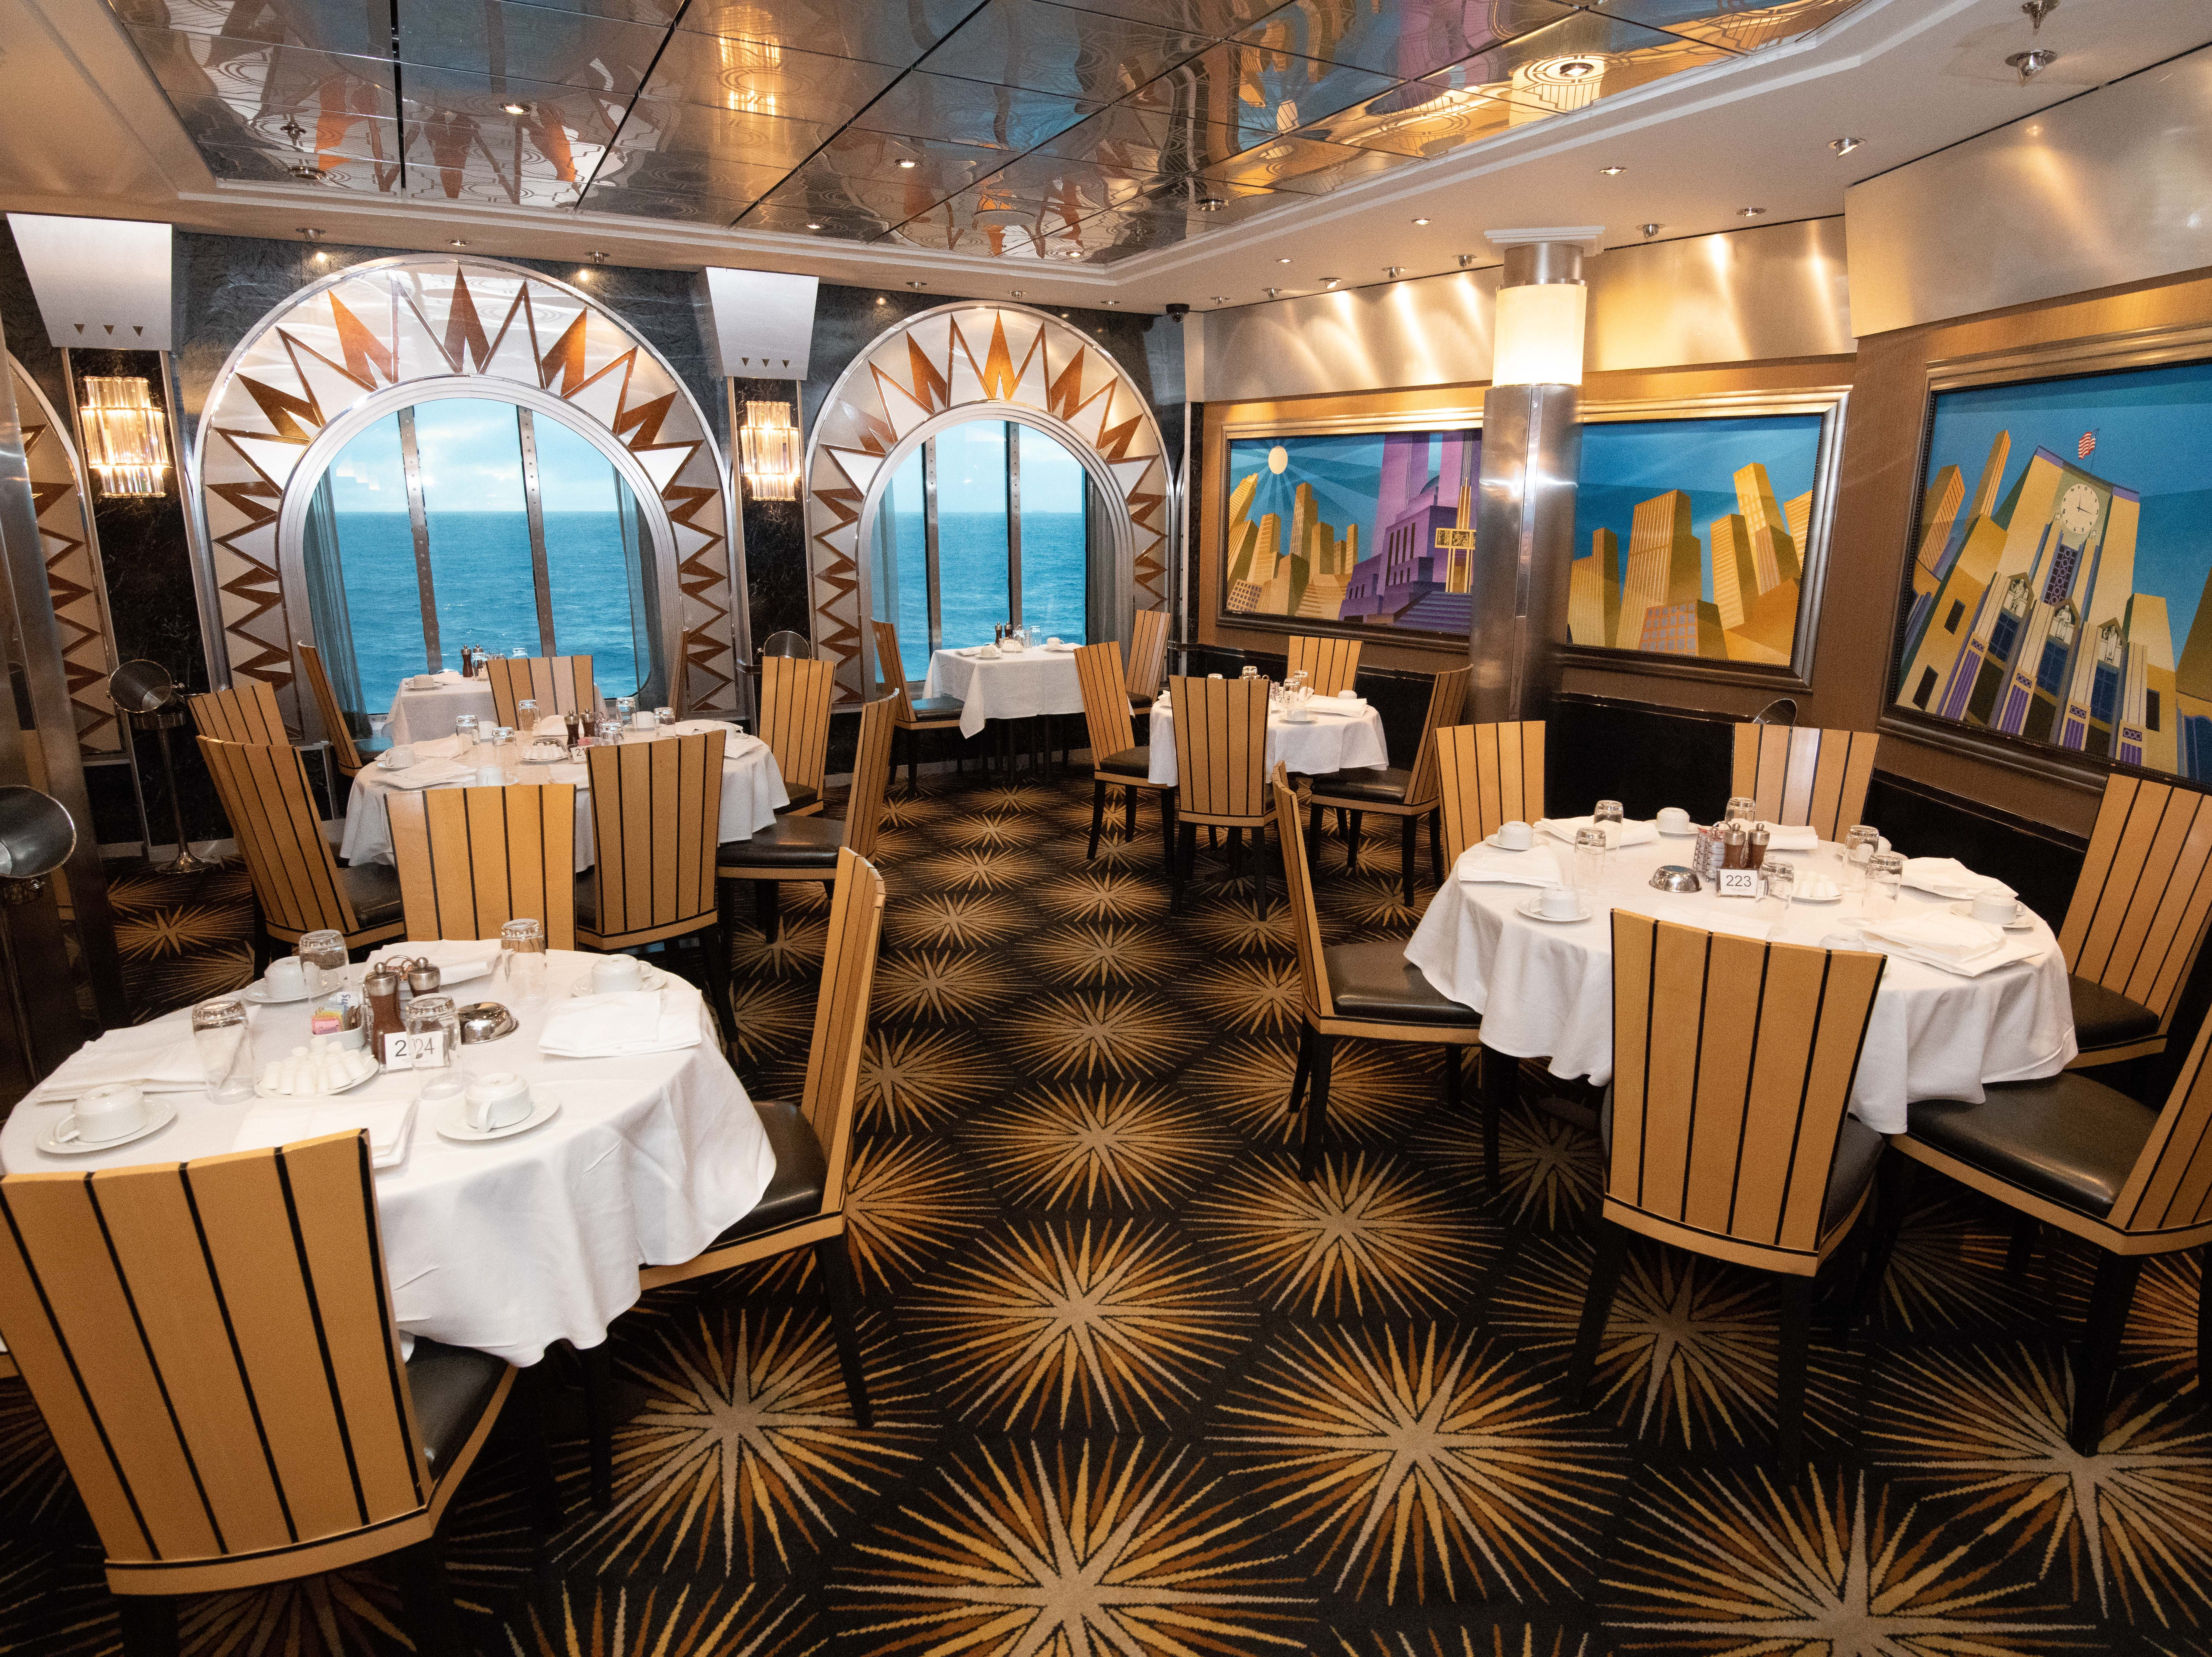 Located at the back of the ship on Deck 5, Skyline Main Dining Room is open for breakfast, lunch and dinner.